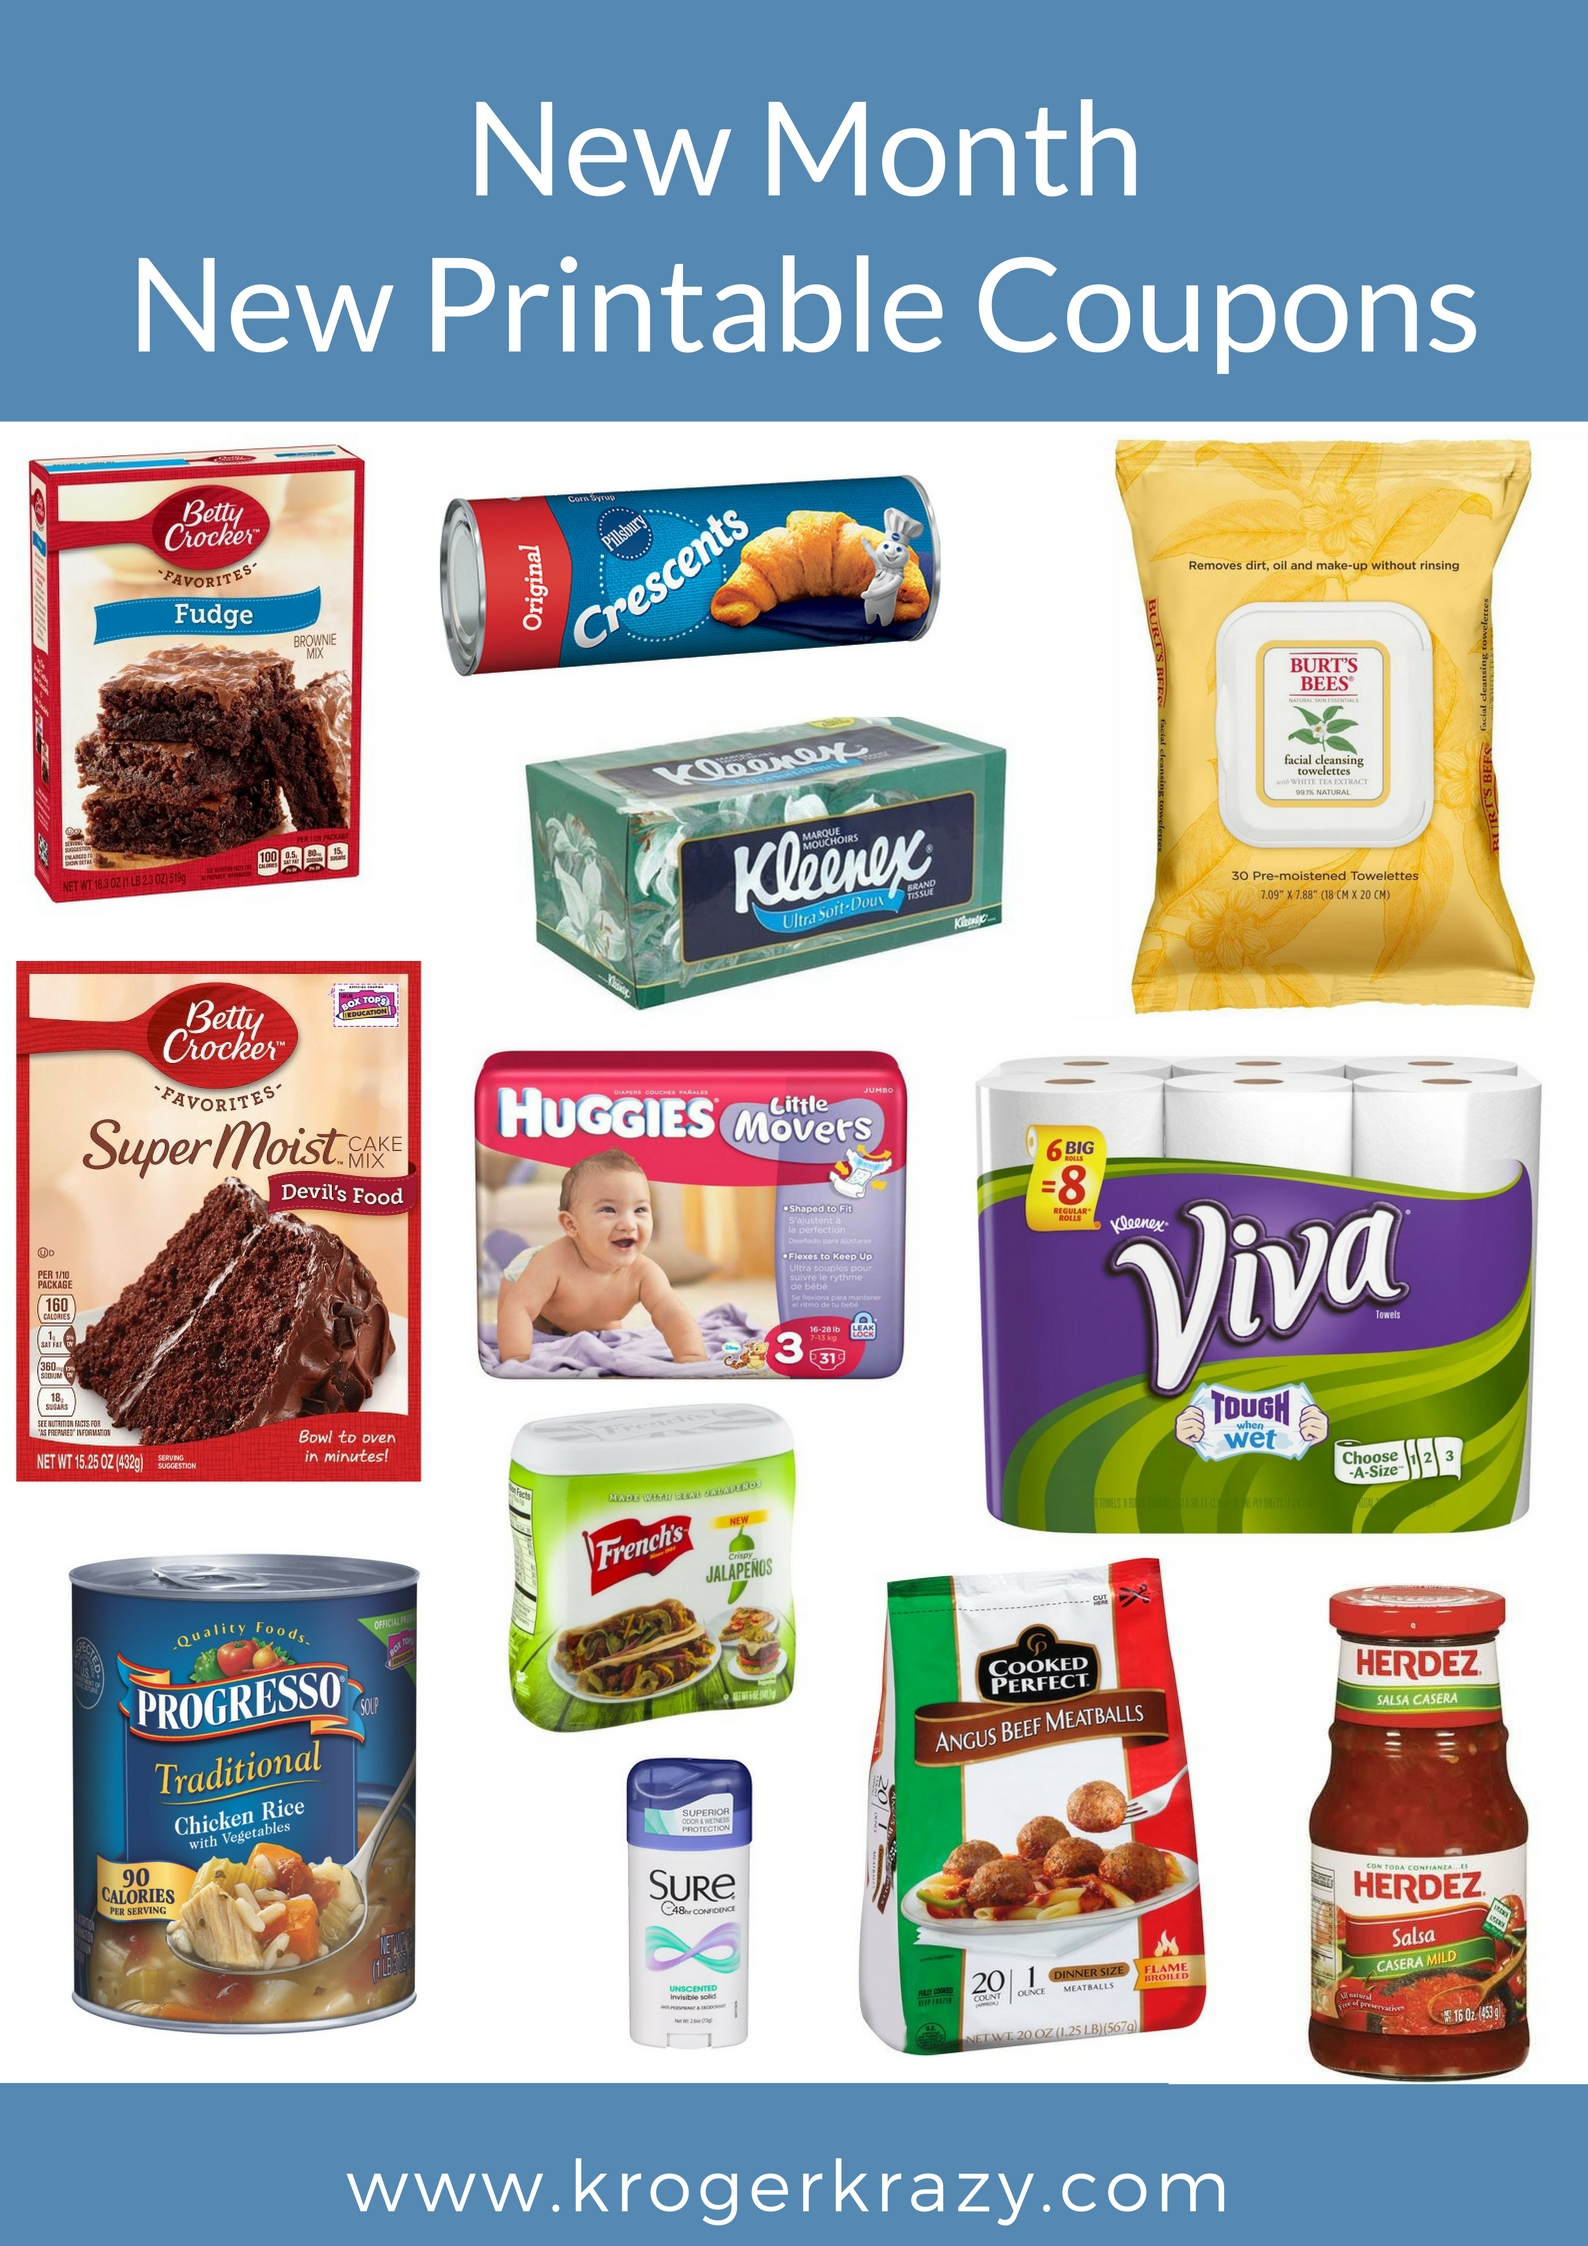 image relating to Viva Printable Coupon called Fresh new Thirty day period, Clean Printable Coupon codes! Betty Crocker Brownie Blend